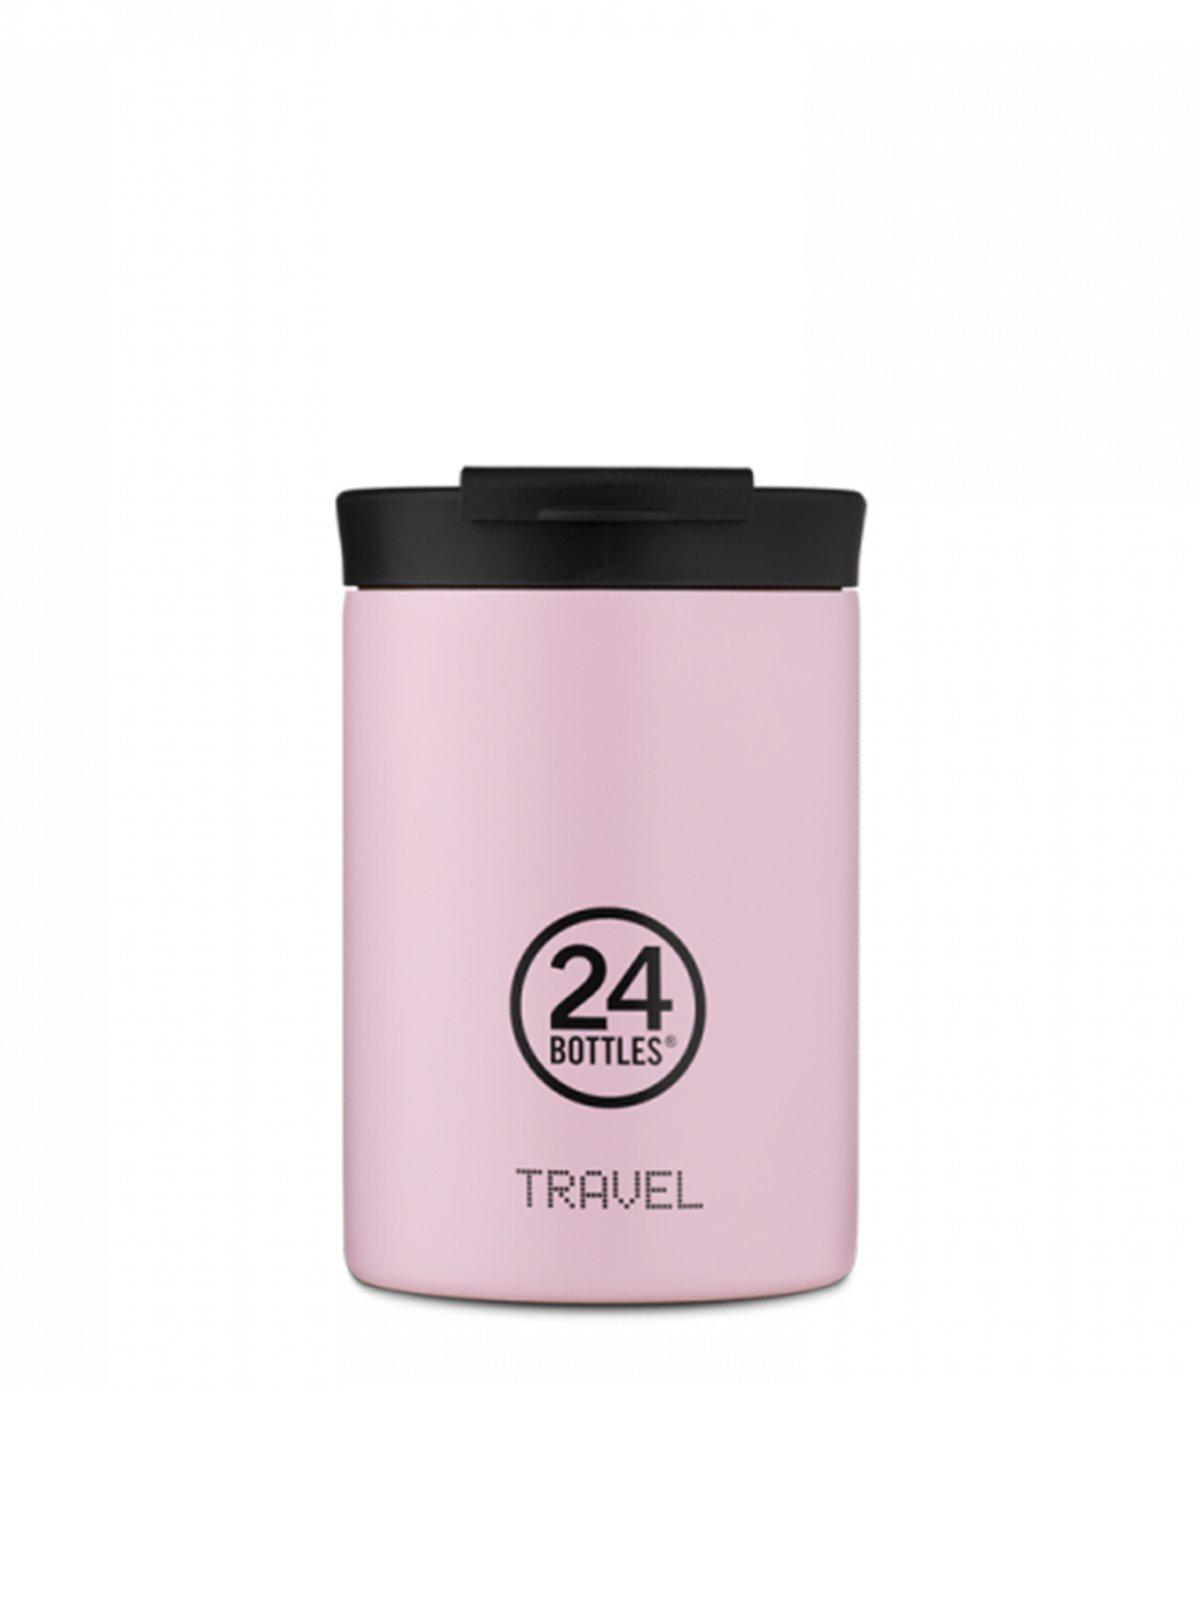 24Bottles Travel Tumbler Candy Pink 350ml - MORE by Morello Indonesia